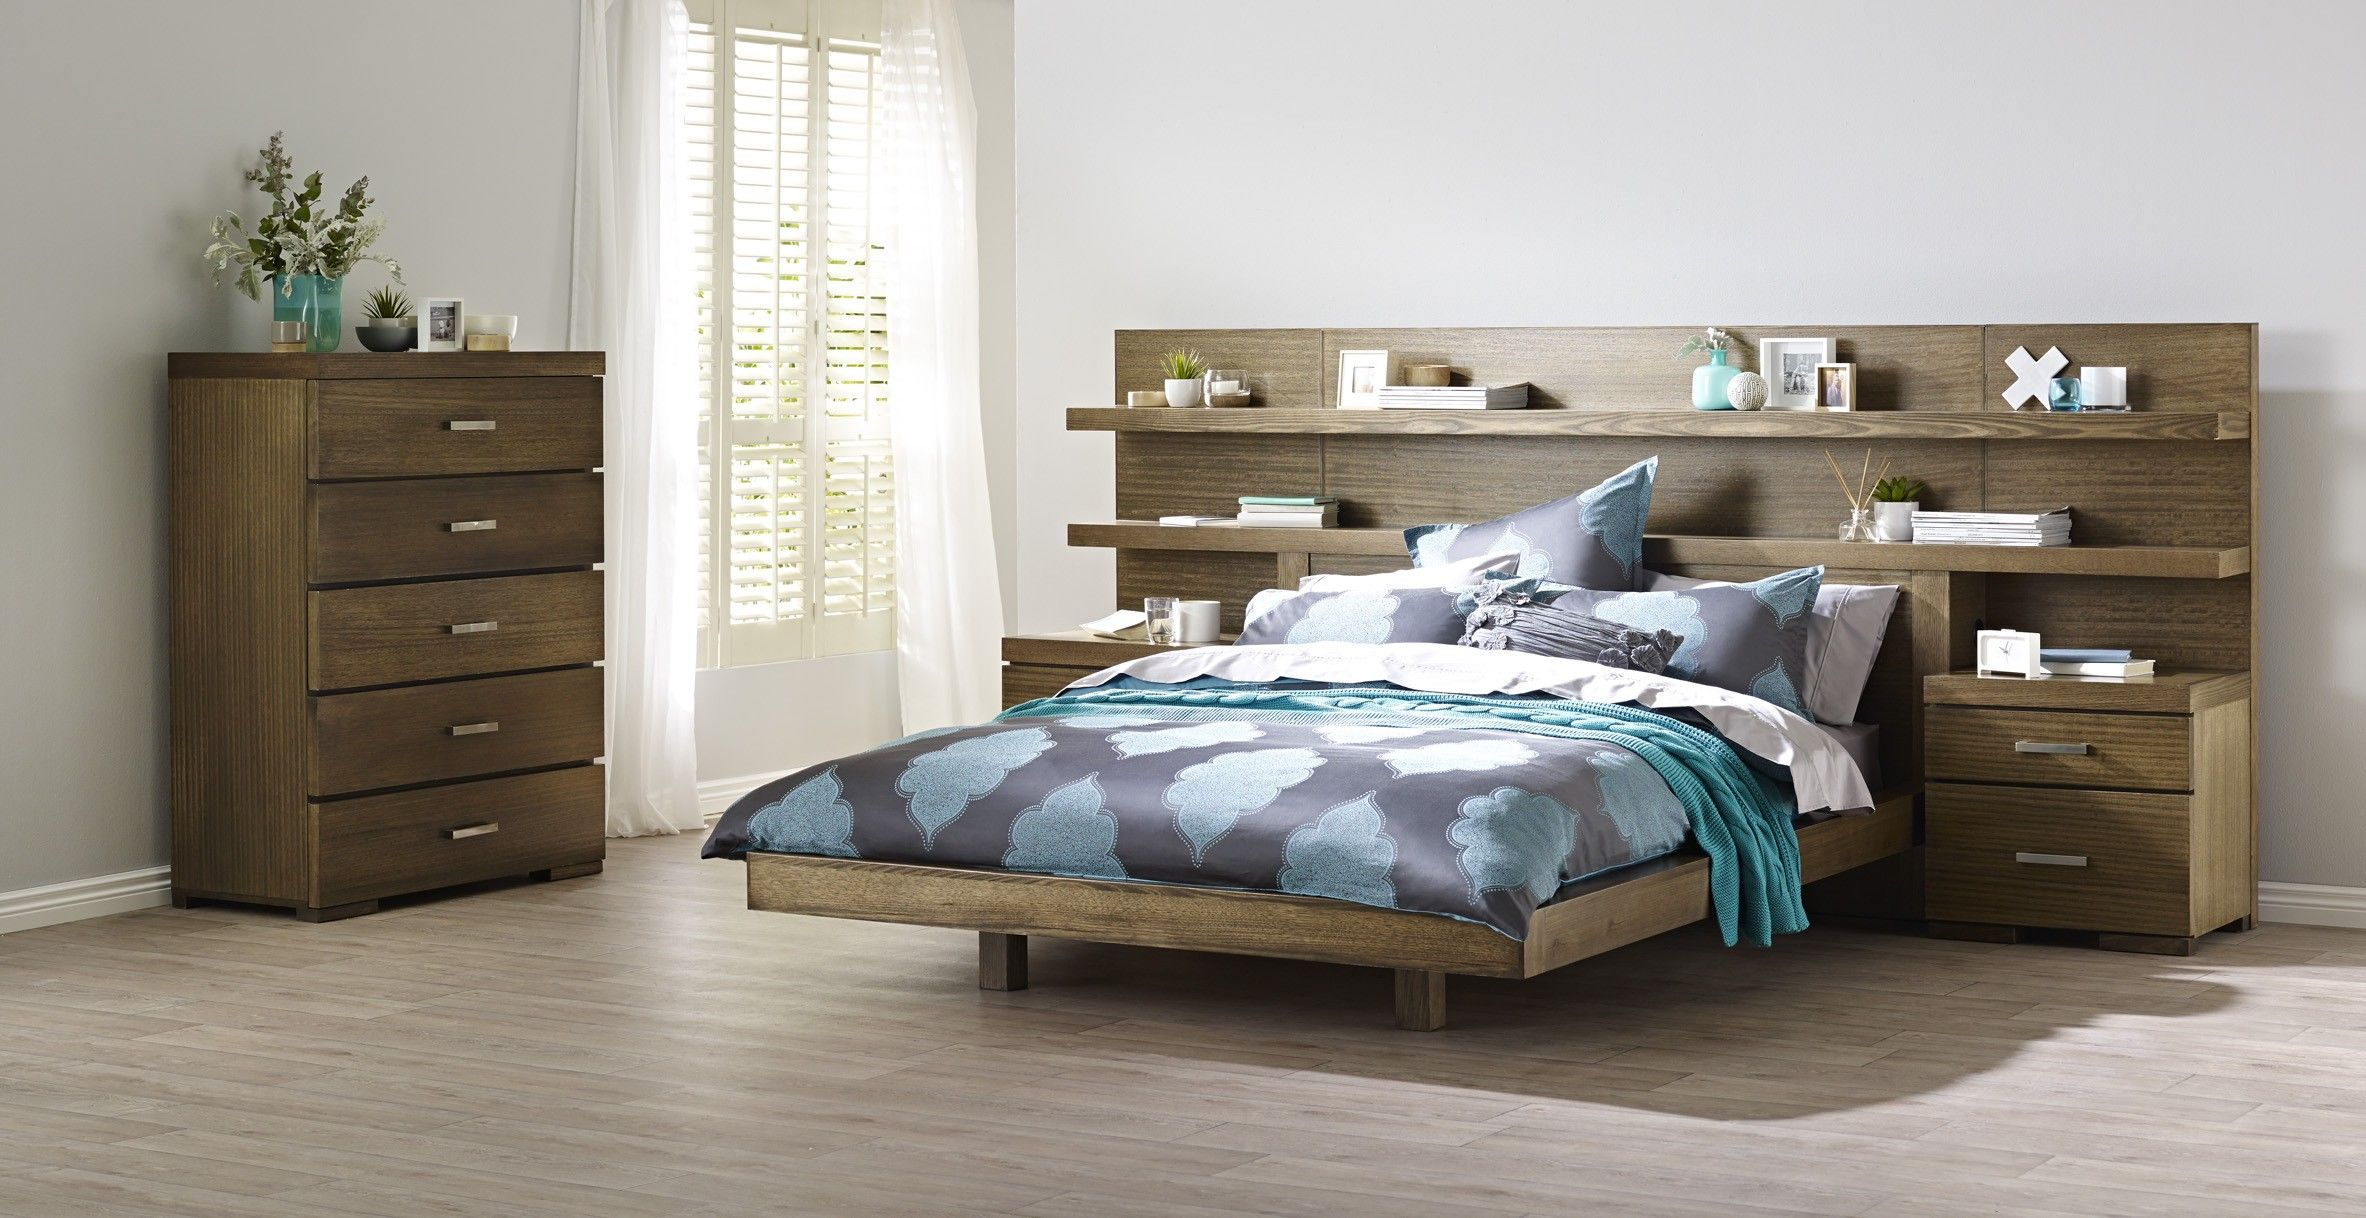 Showcase Bedroom Furniture This bed truly is a Showcase More